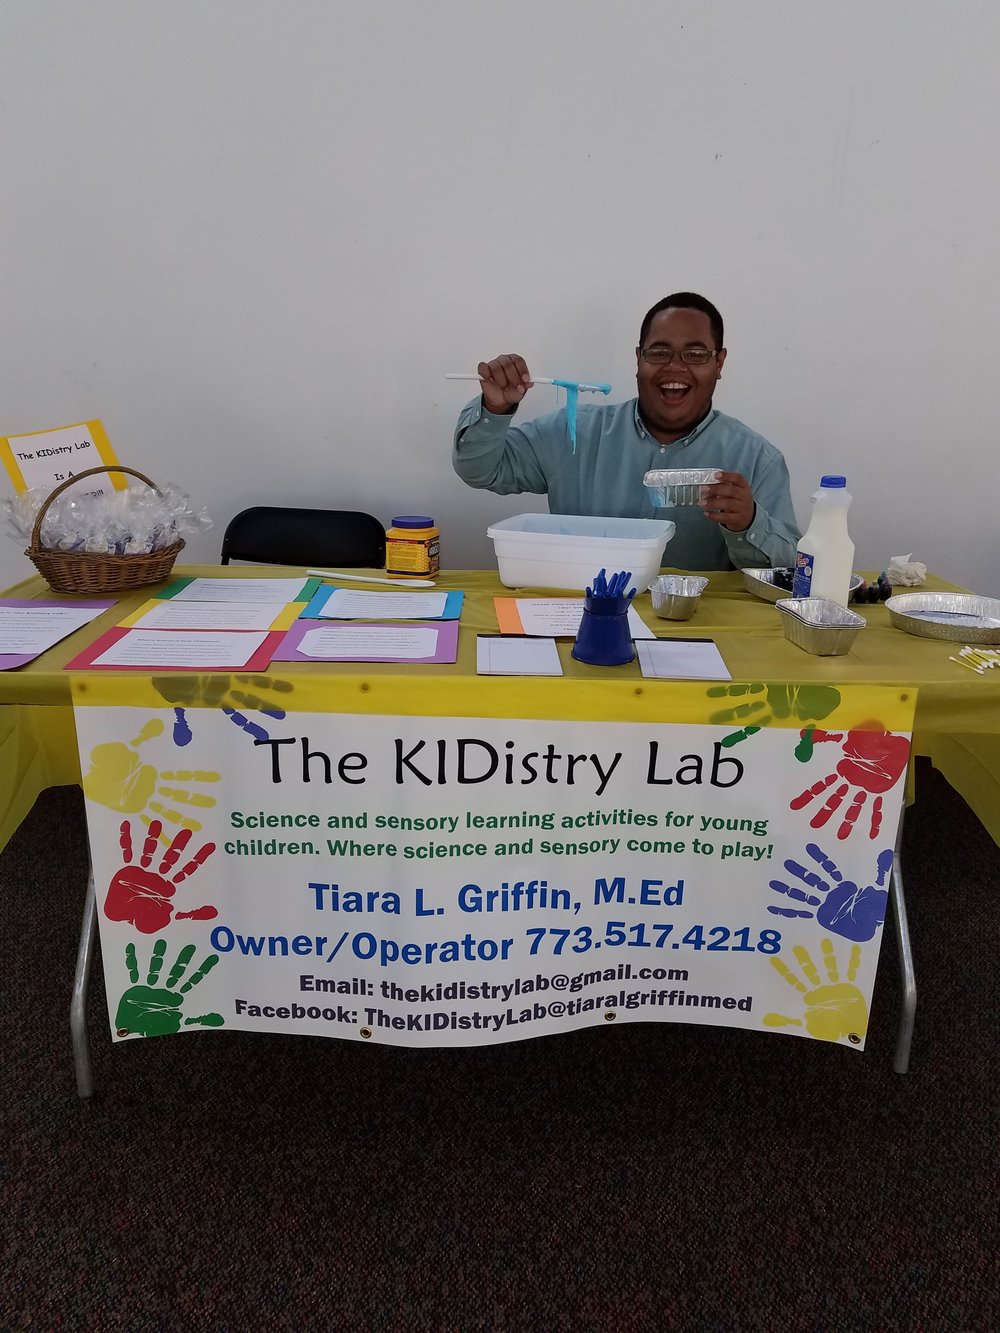 The Kidisty Lab Networking Event